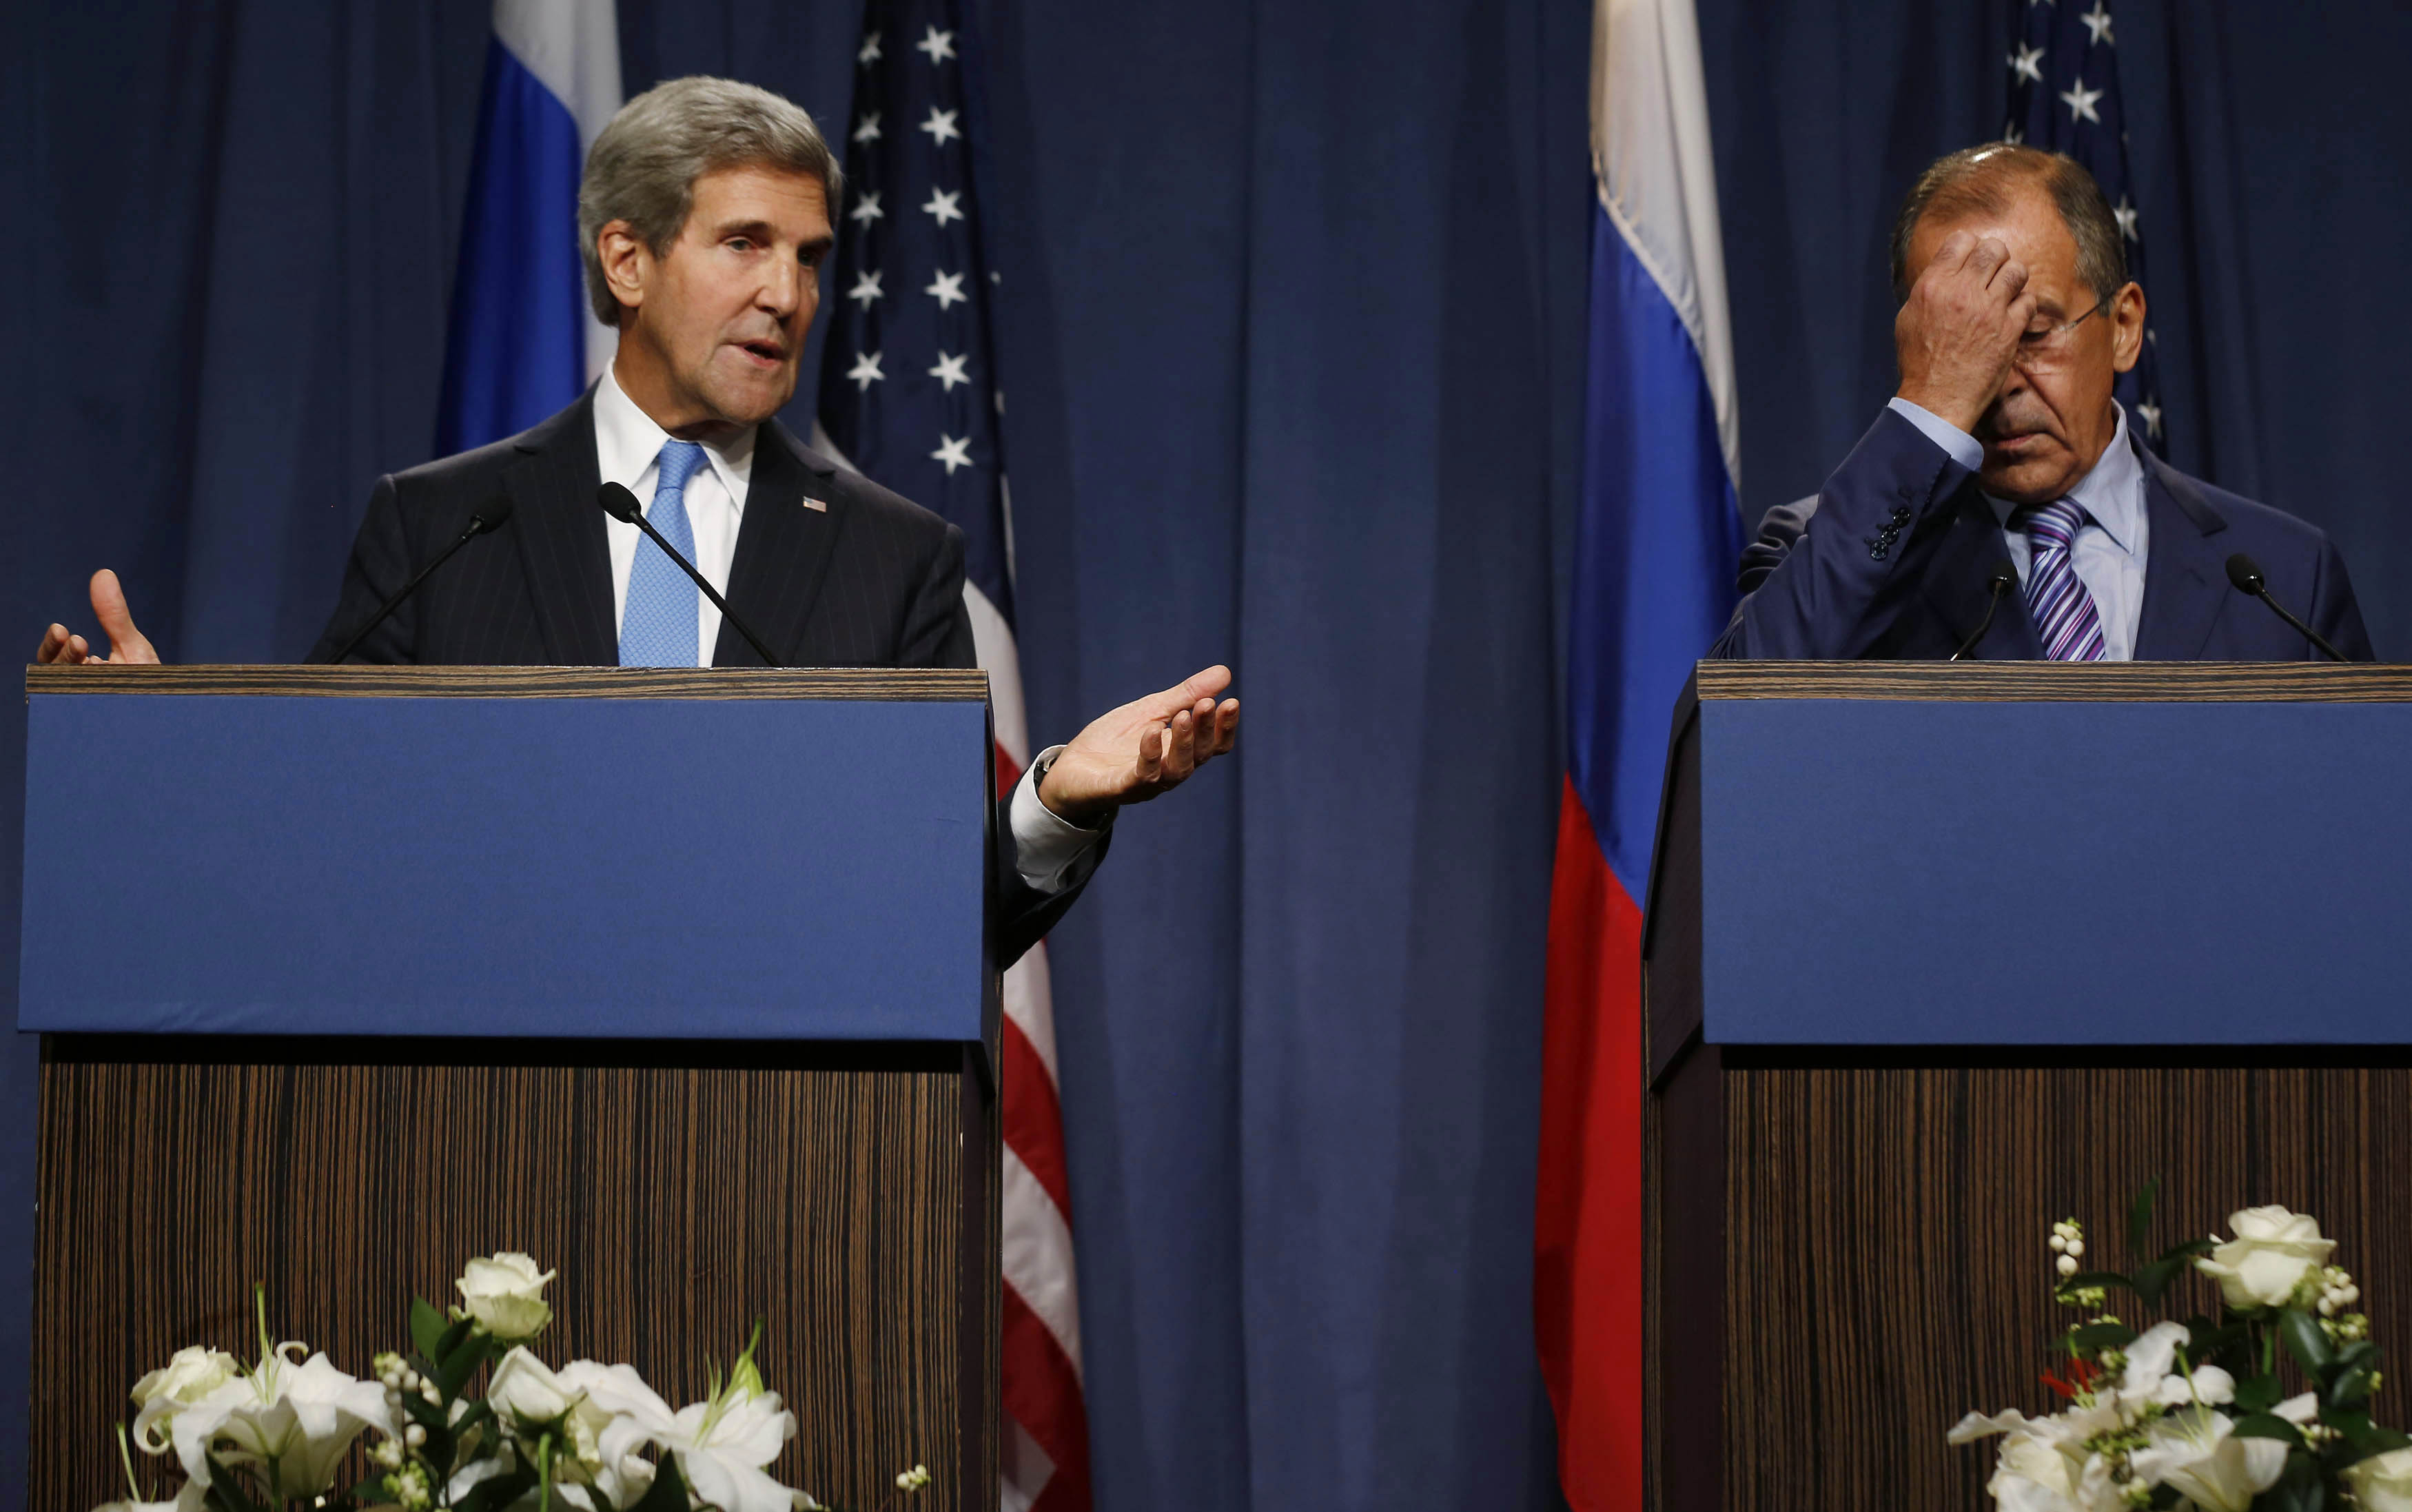 Syria agrees to international control of its chemical weapons